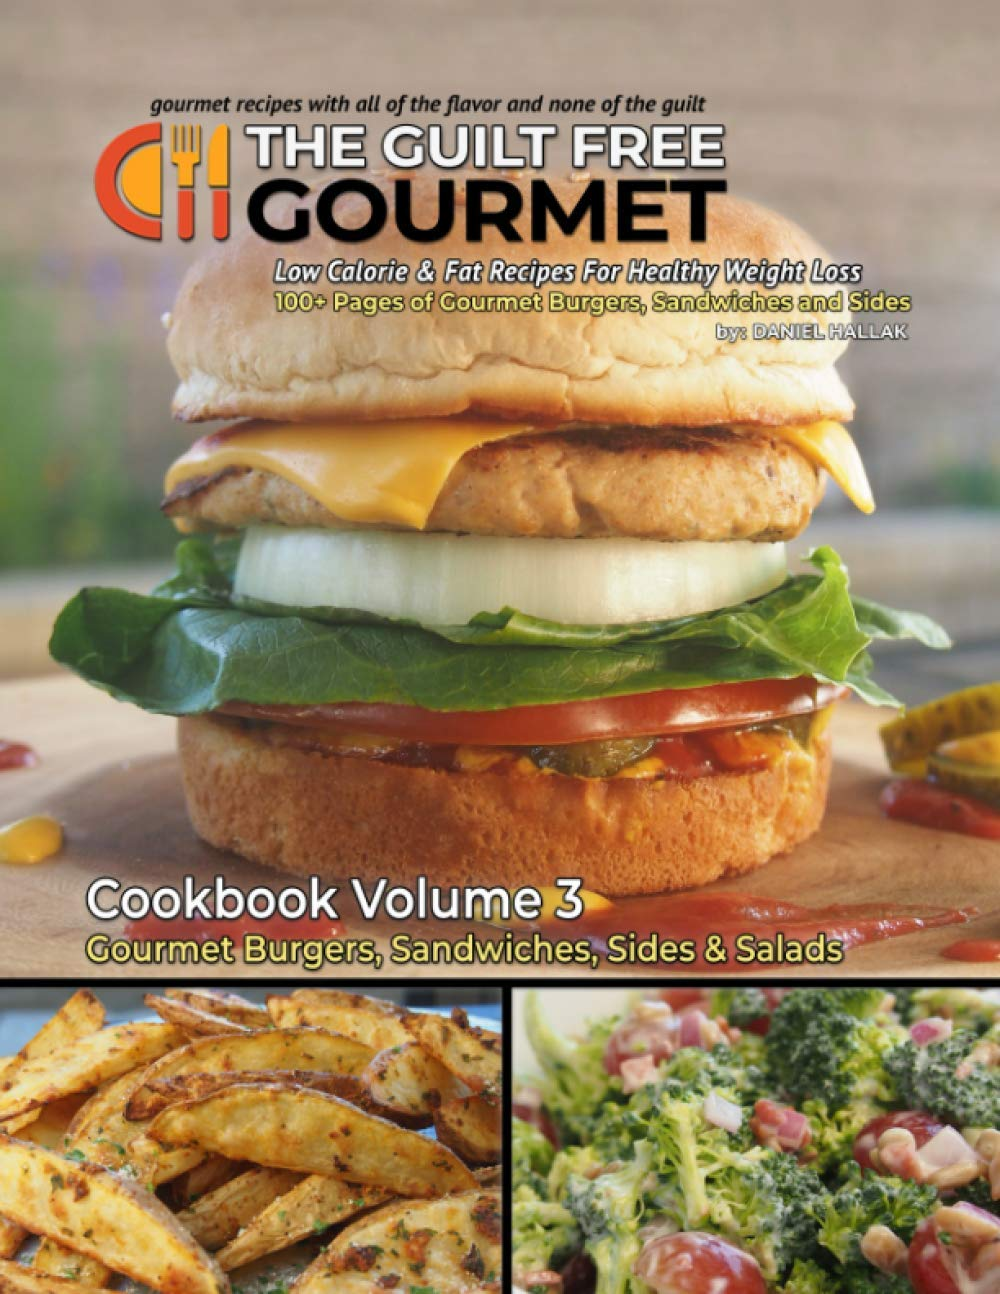 The Guilt Free Gourmet Cookbook Volume 3: Gourmet Burgers, Sandwiches, Sides & Salads for Healthy Weight Loss 1